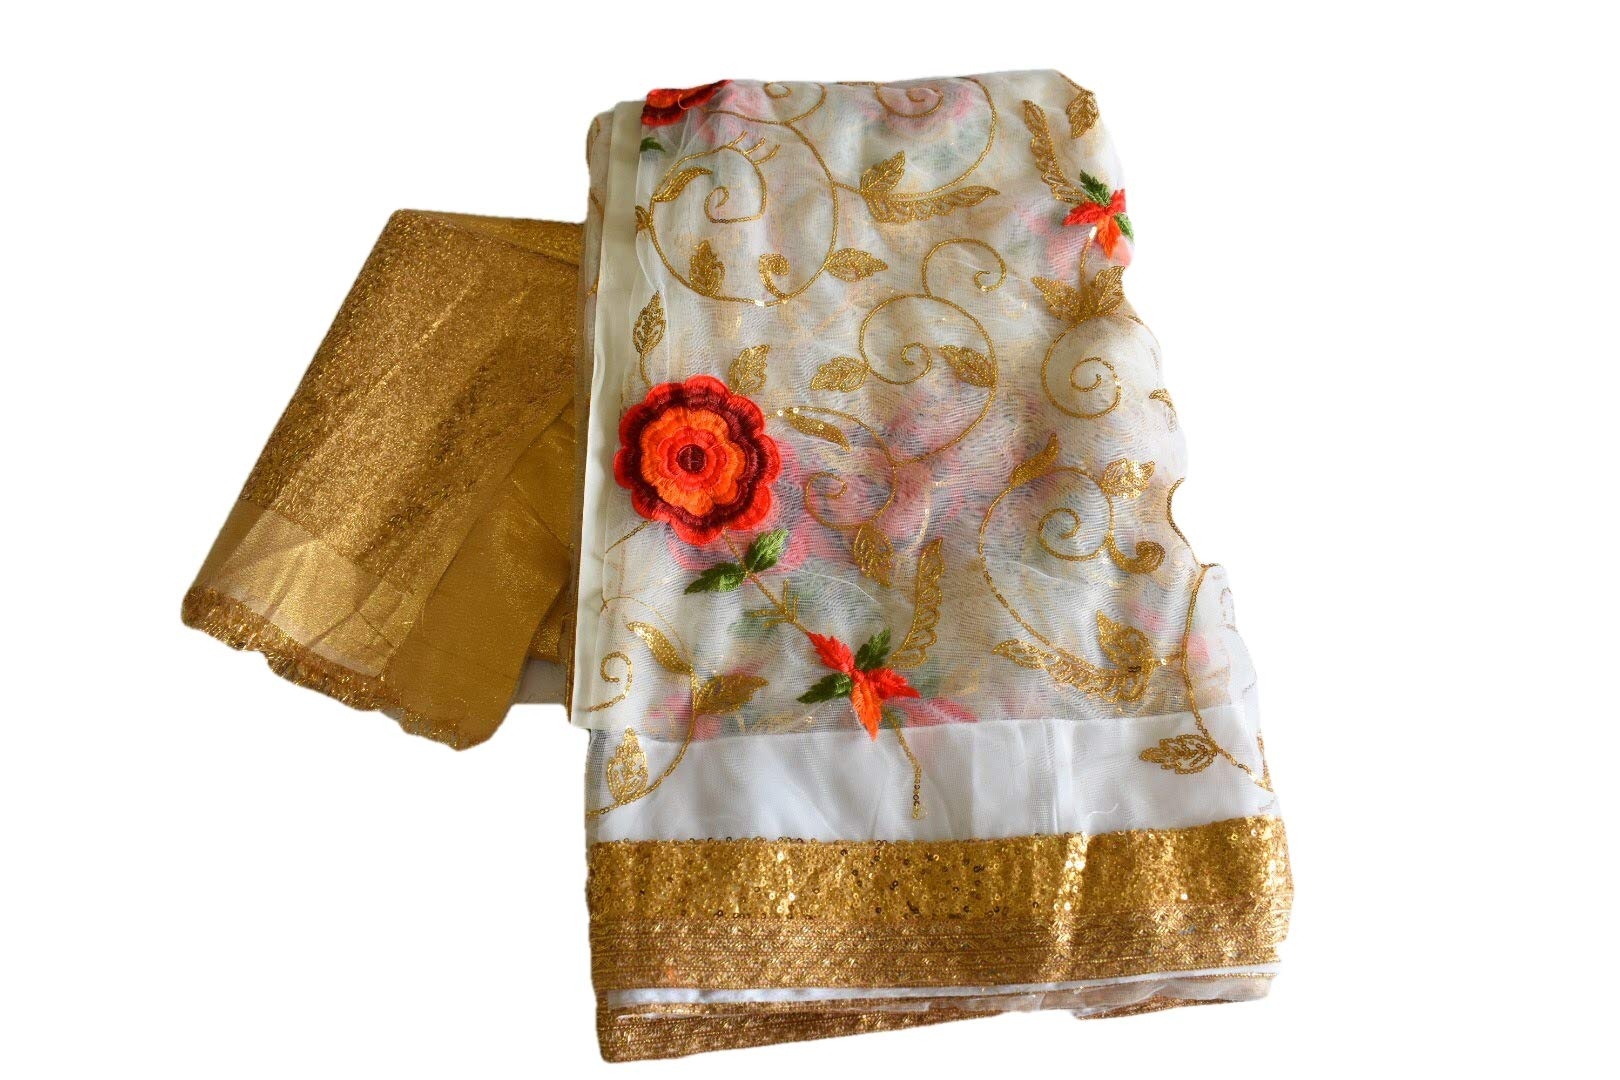 Rainbow Collections Modern wear Chiffon Saree with Gold and Red Embroidery with Gold Sequin in White Color. Saree Fall and Edge is Fully Stitched.